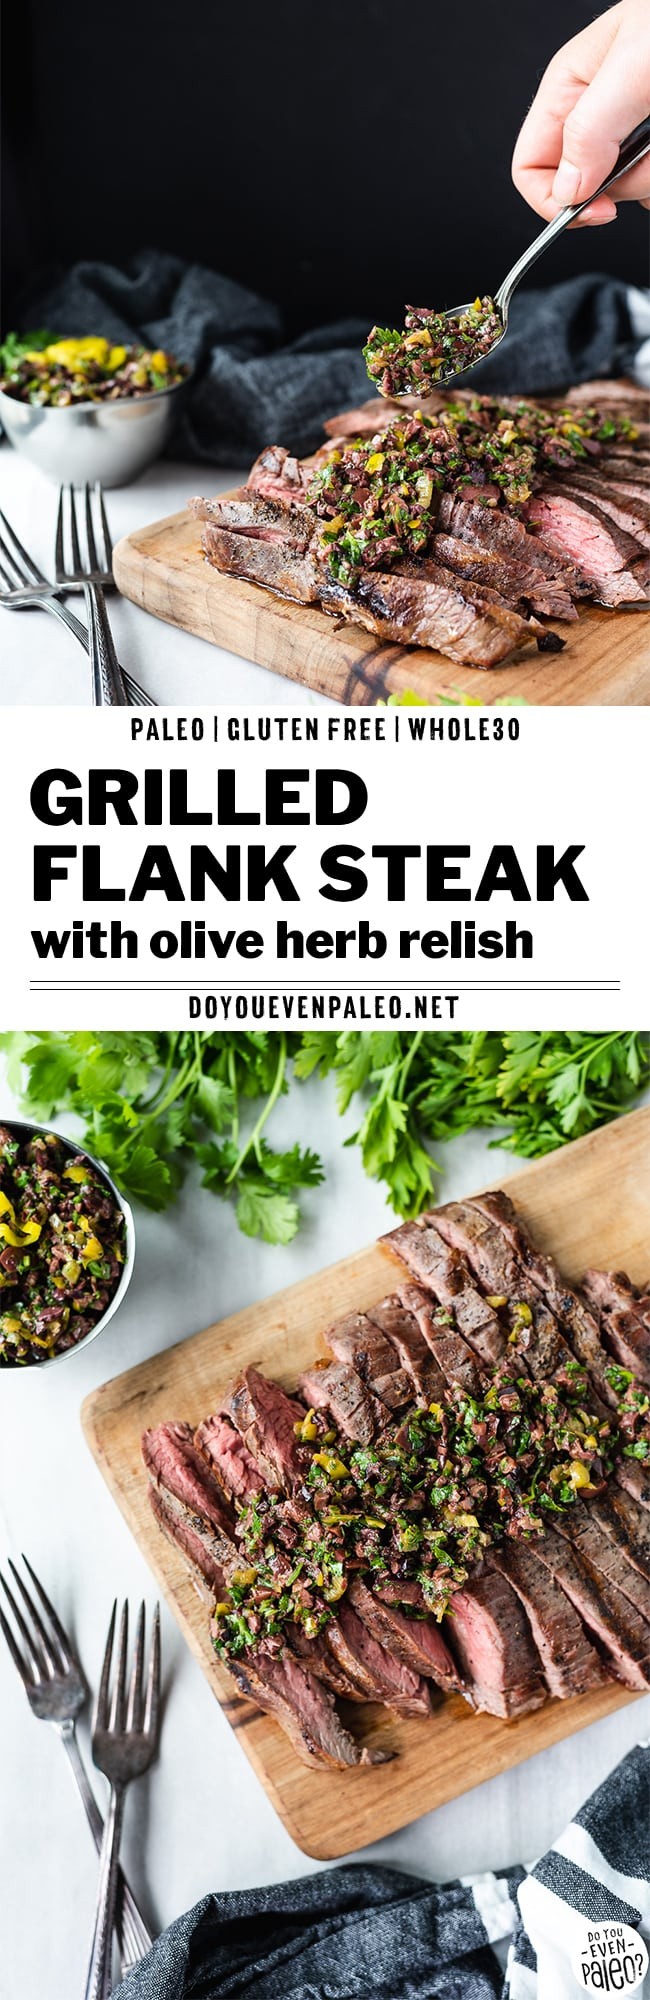 Gluten Free Grilled Flank Steak Recipe with Olive Herb Relish | DoYouEvenPaleo.net